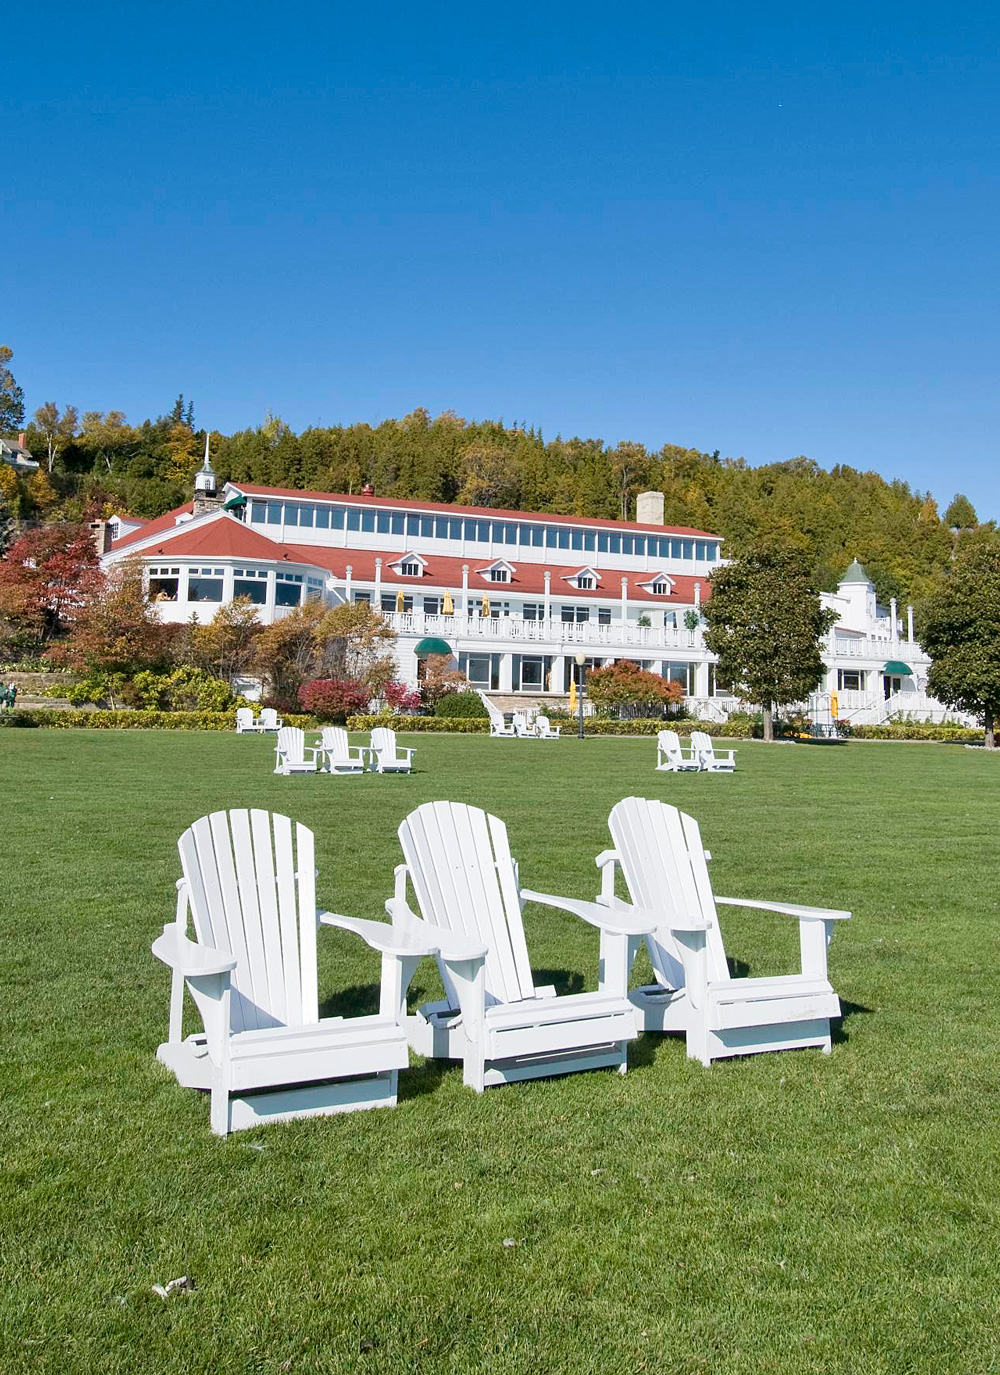 Mission Point Resort, Mackinac Island, Michigan